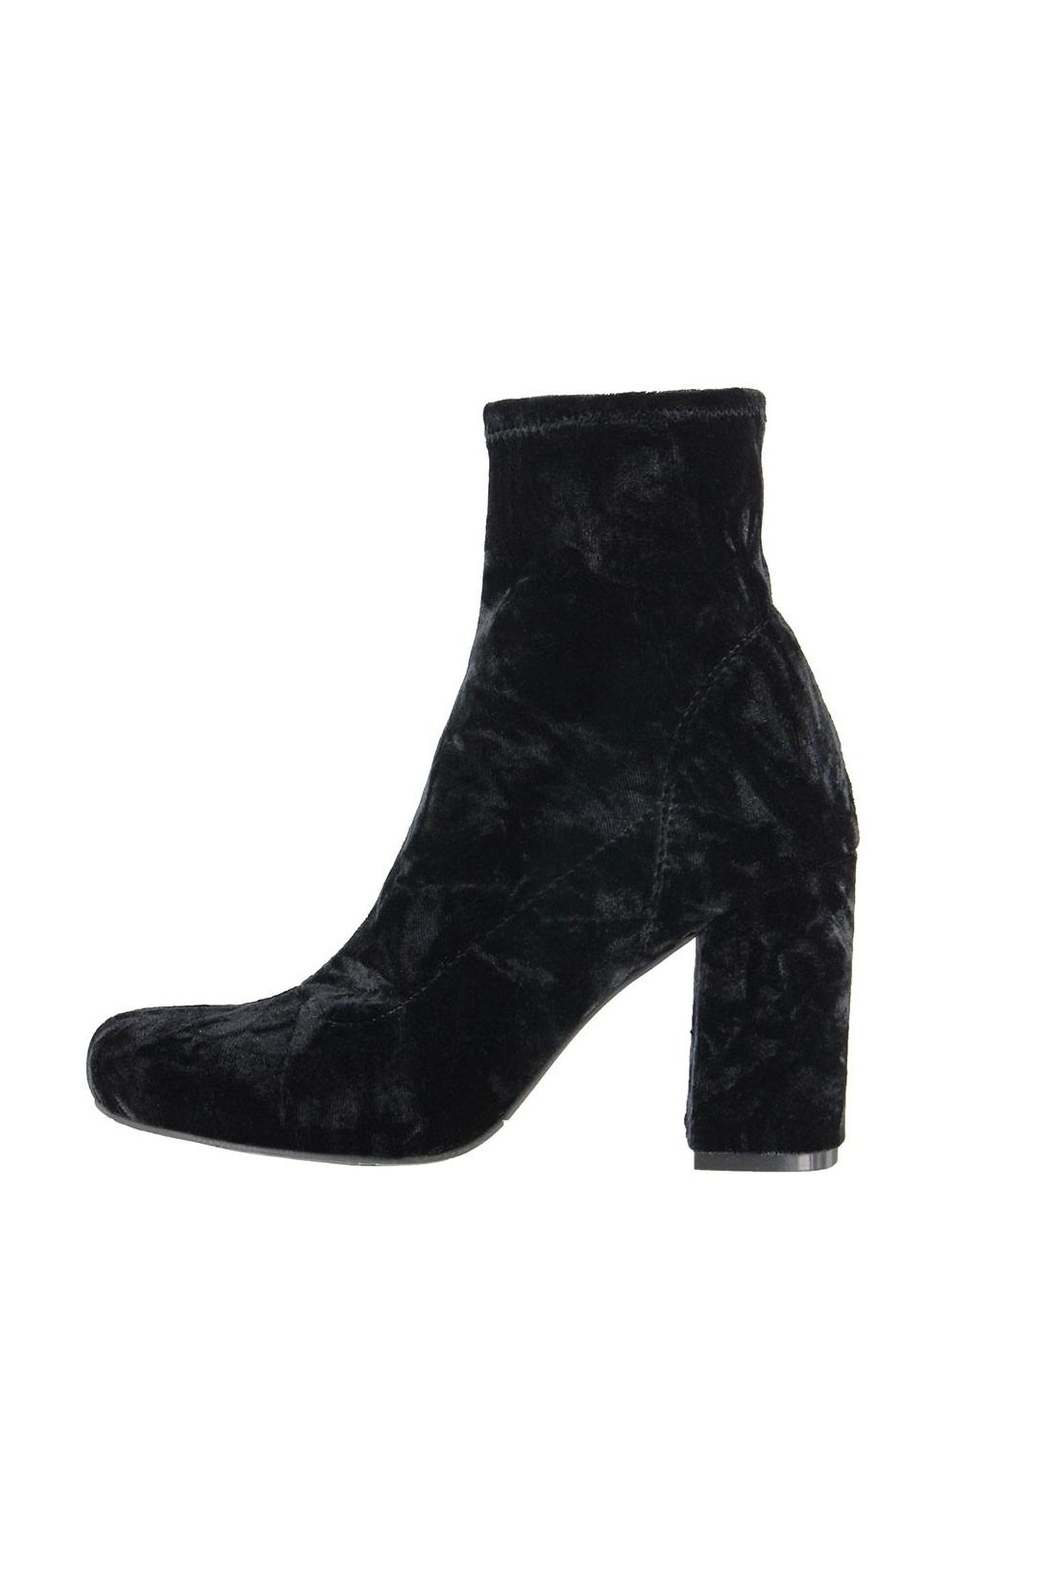 Mia Valencia Velvet Boot - Front Cropped Image